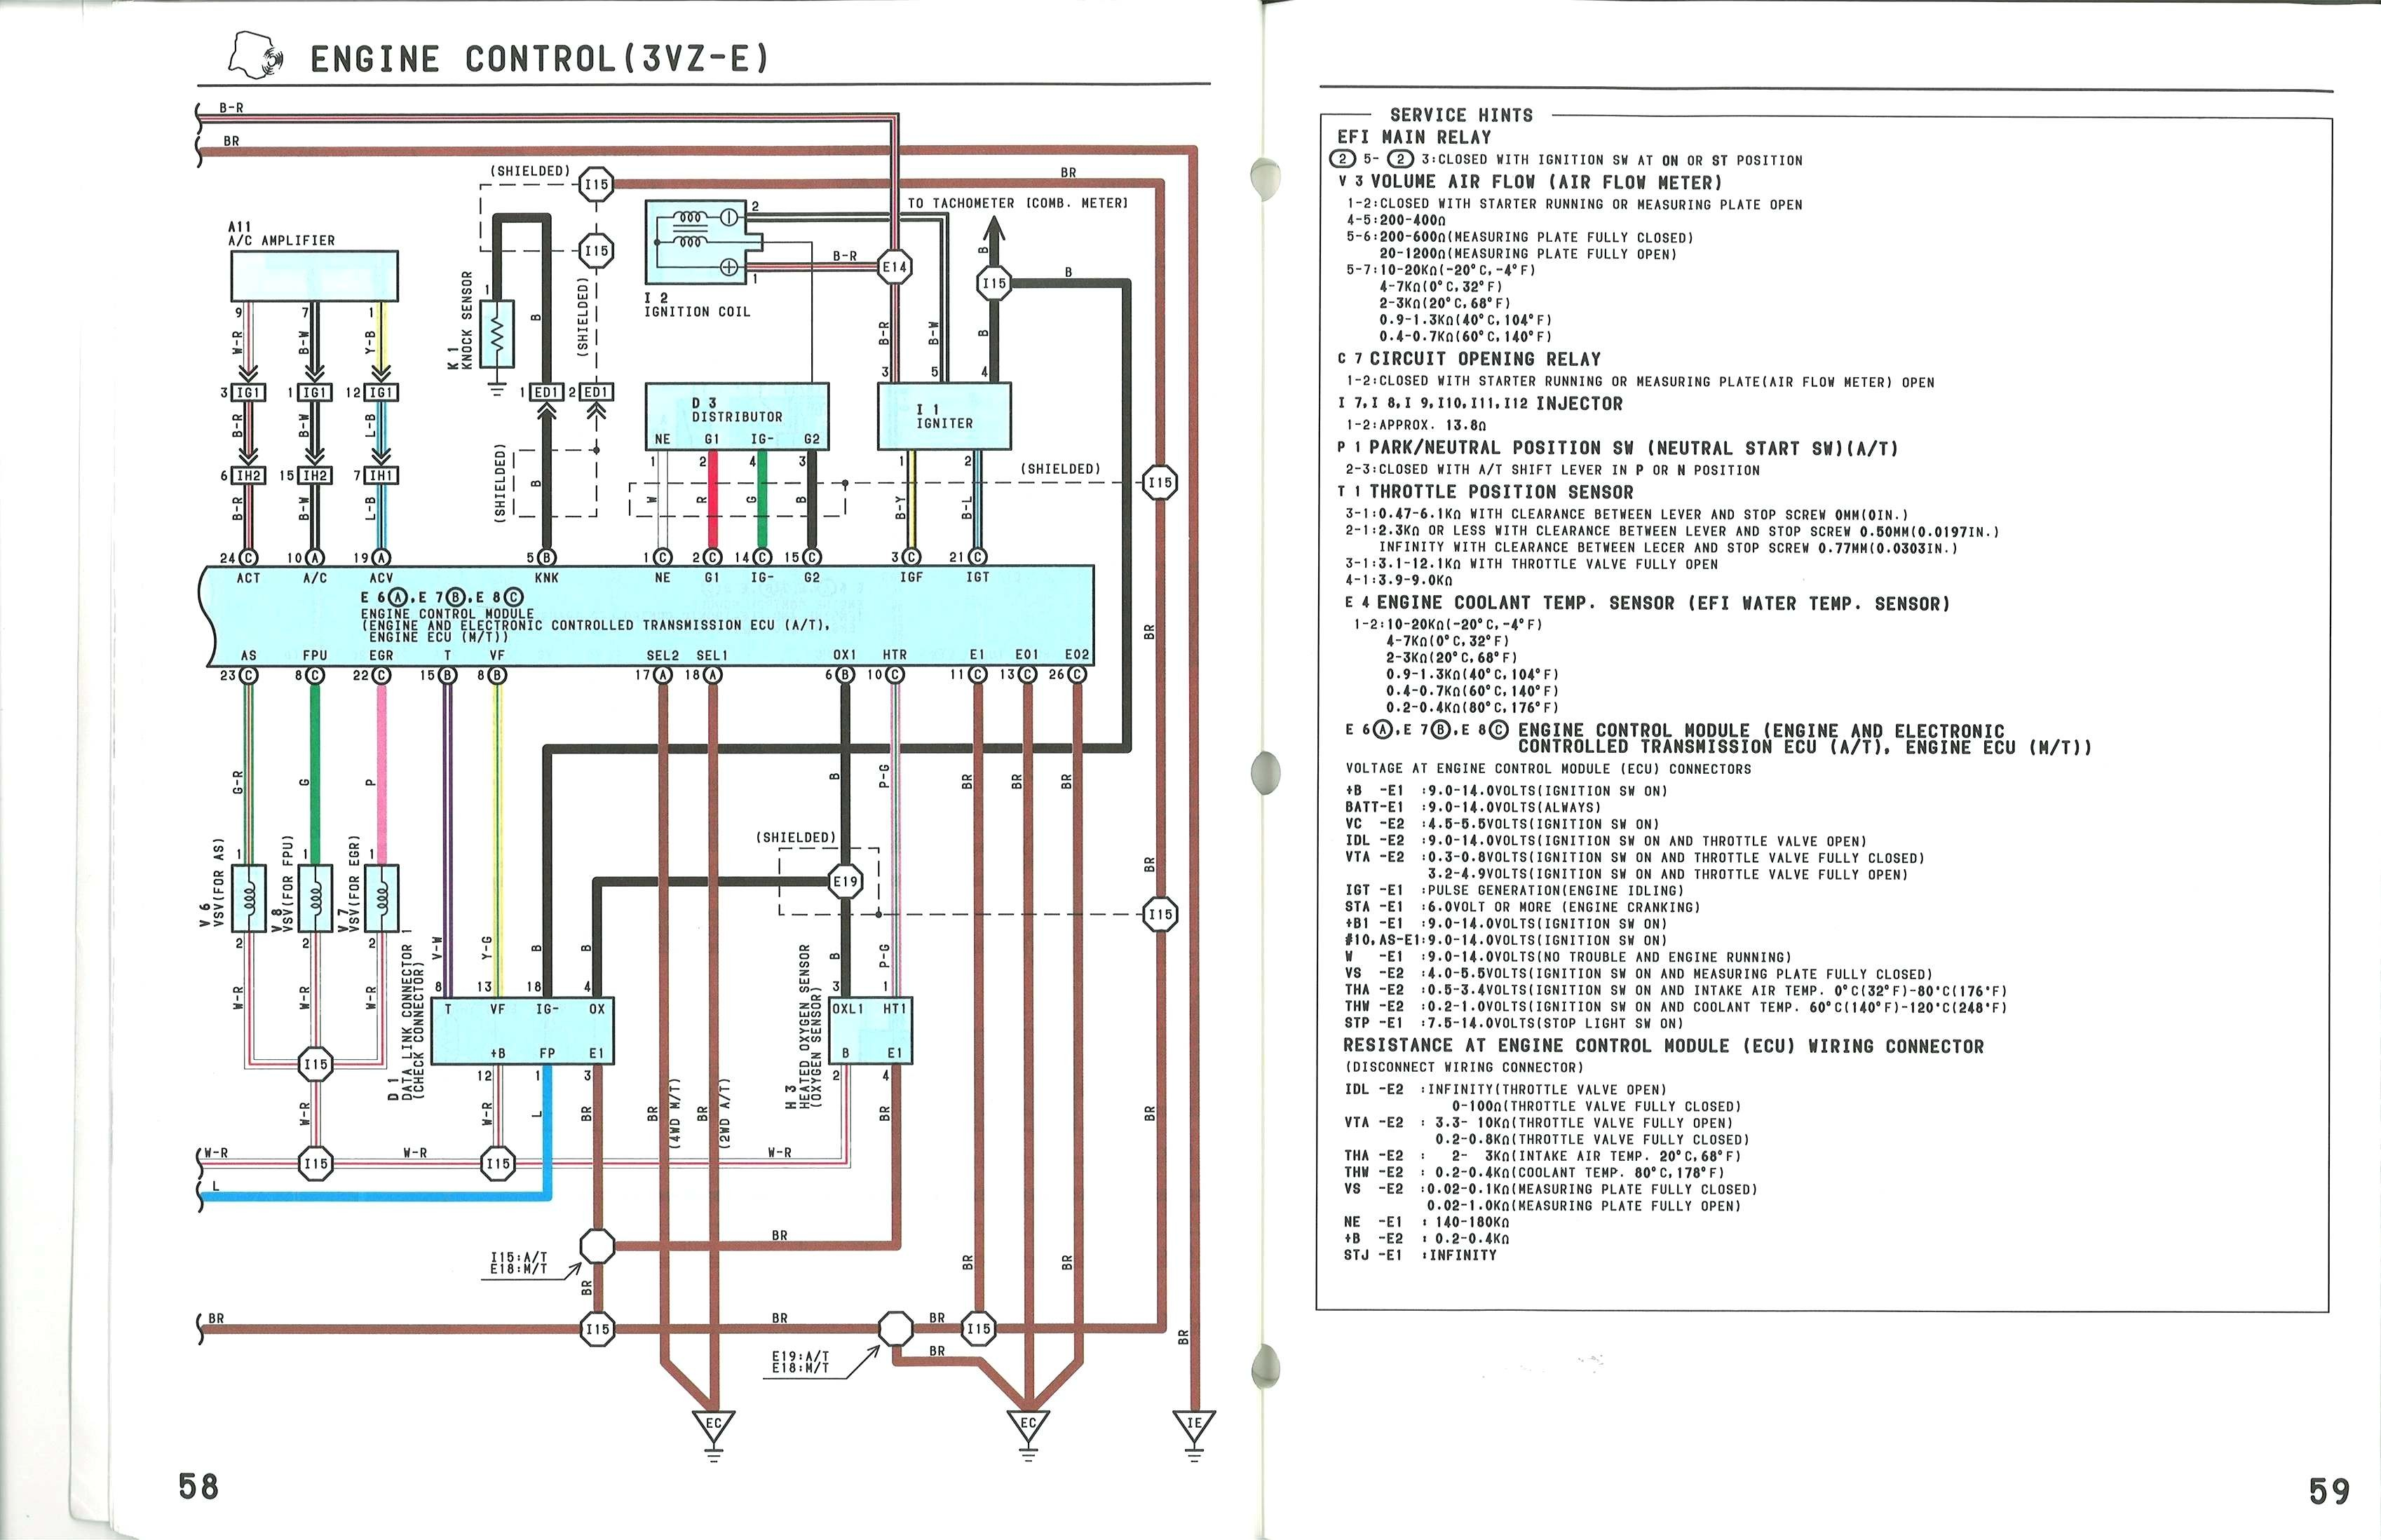 1988 toyota Pickup Engine Diagram 1988 toyota Pickup Fuse Diagram Alternator Wiring Used Electric Of 1988 toyota Pickup Engine Diagram